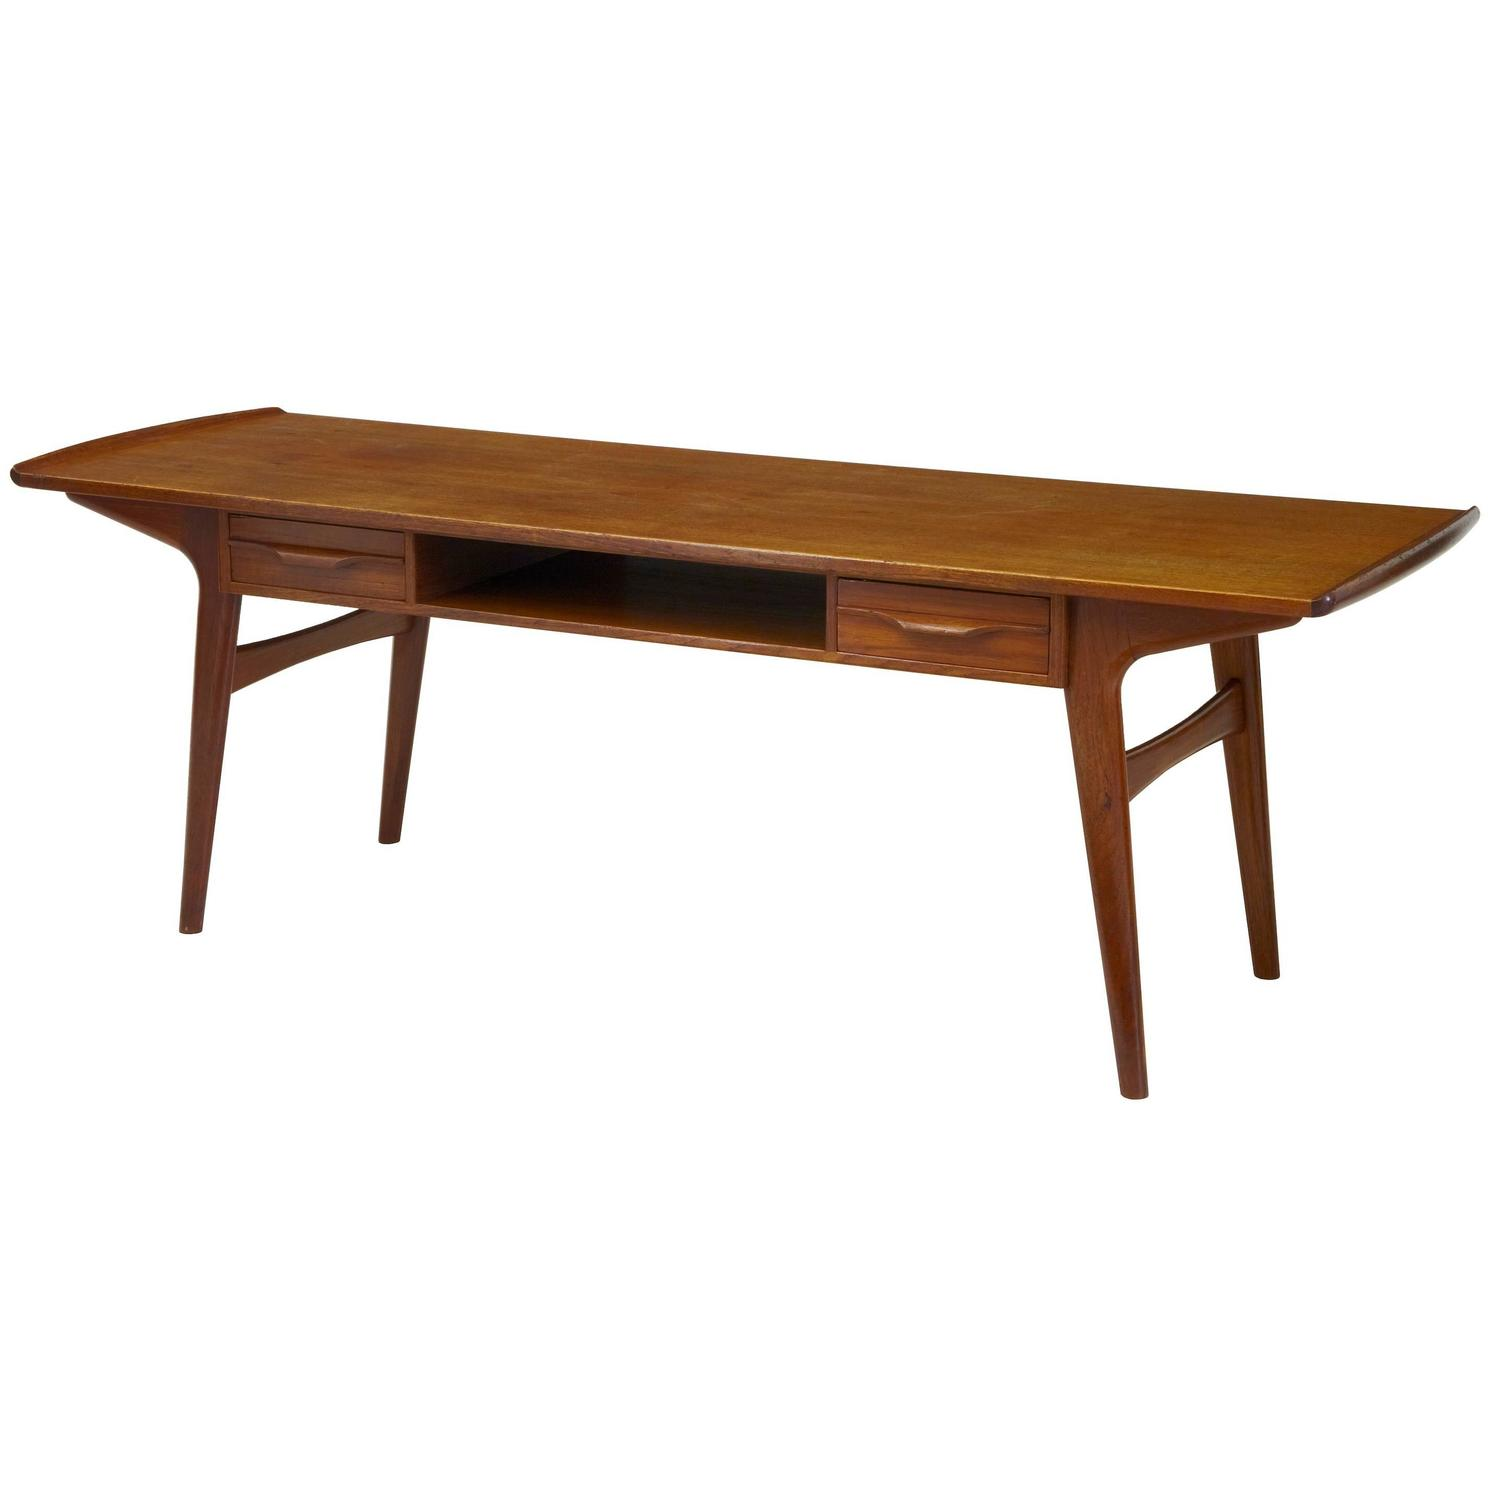 1960s Solid Teak Scandinavian Coffee Table For Sale At 1stdibs